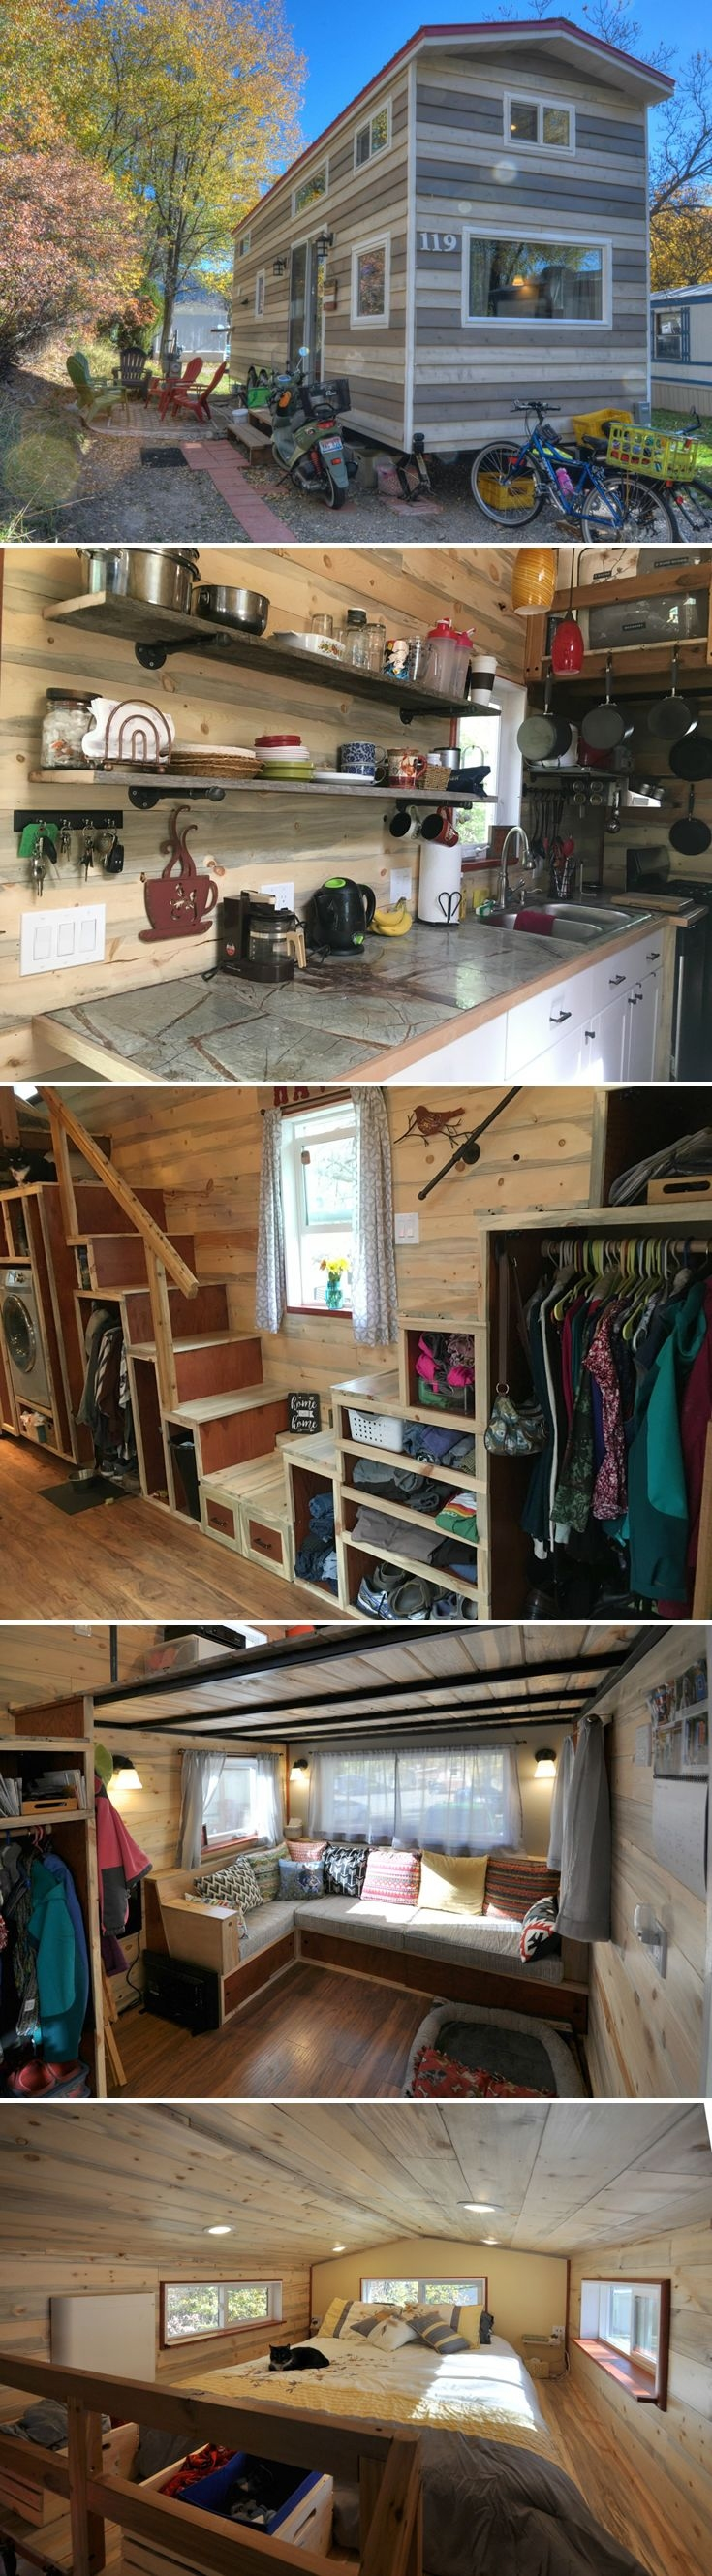 60 Small Mountain Cabin Plans with Loft Luxury Harmony Haven by Rocky Mountain Tiny Houses